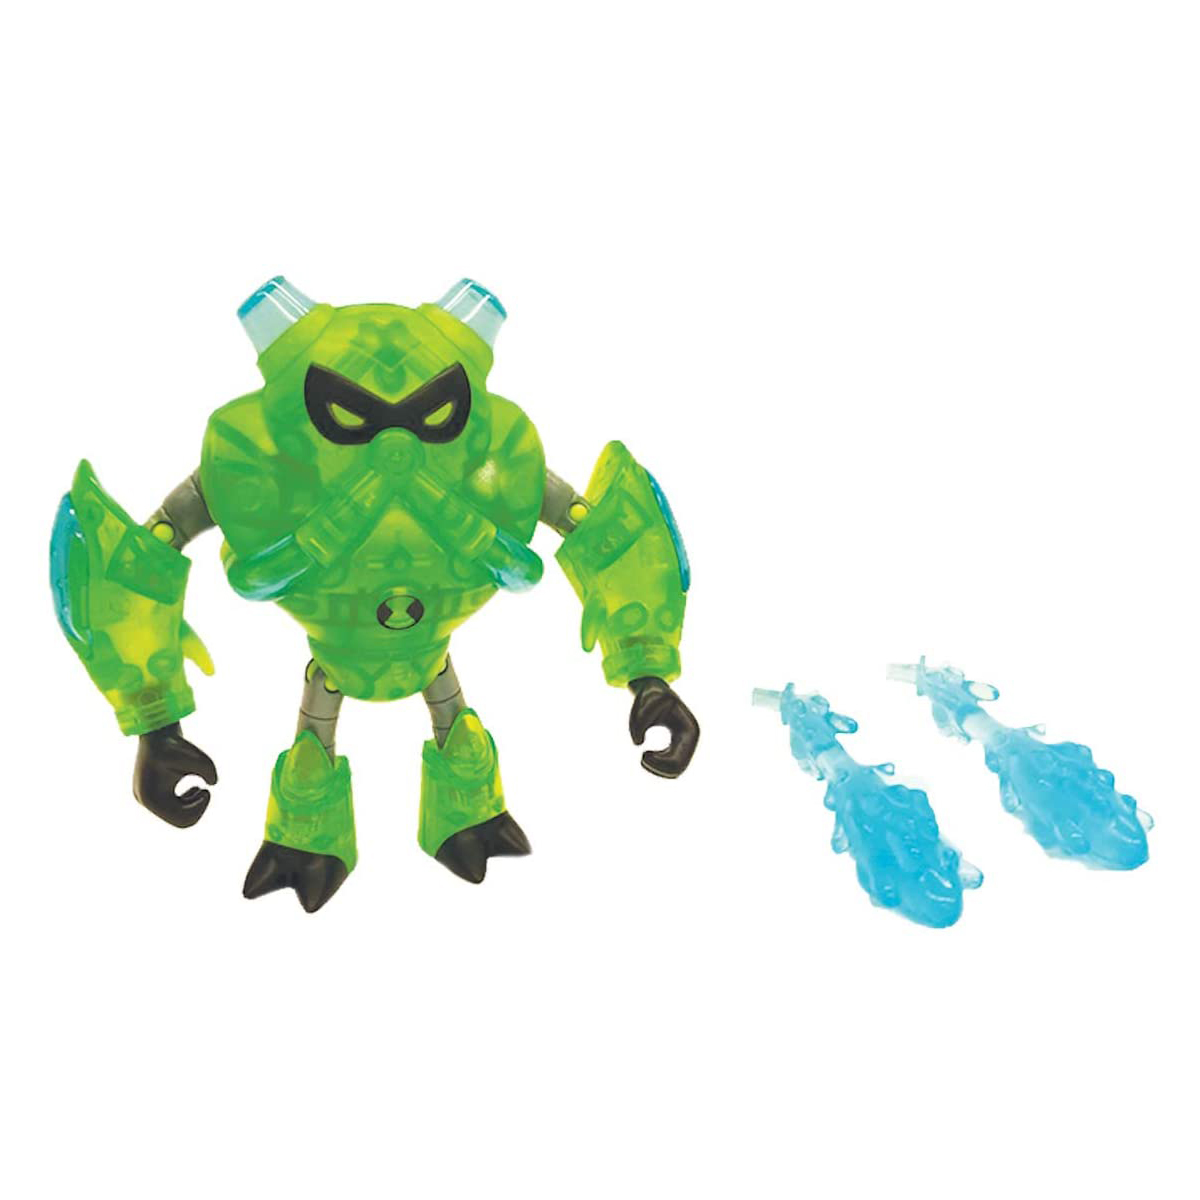 Figurina Ben 10 Out of the Omnitrix, Overflow, 76156, 12 cm